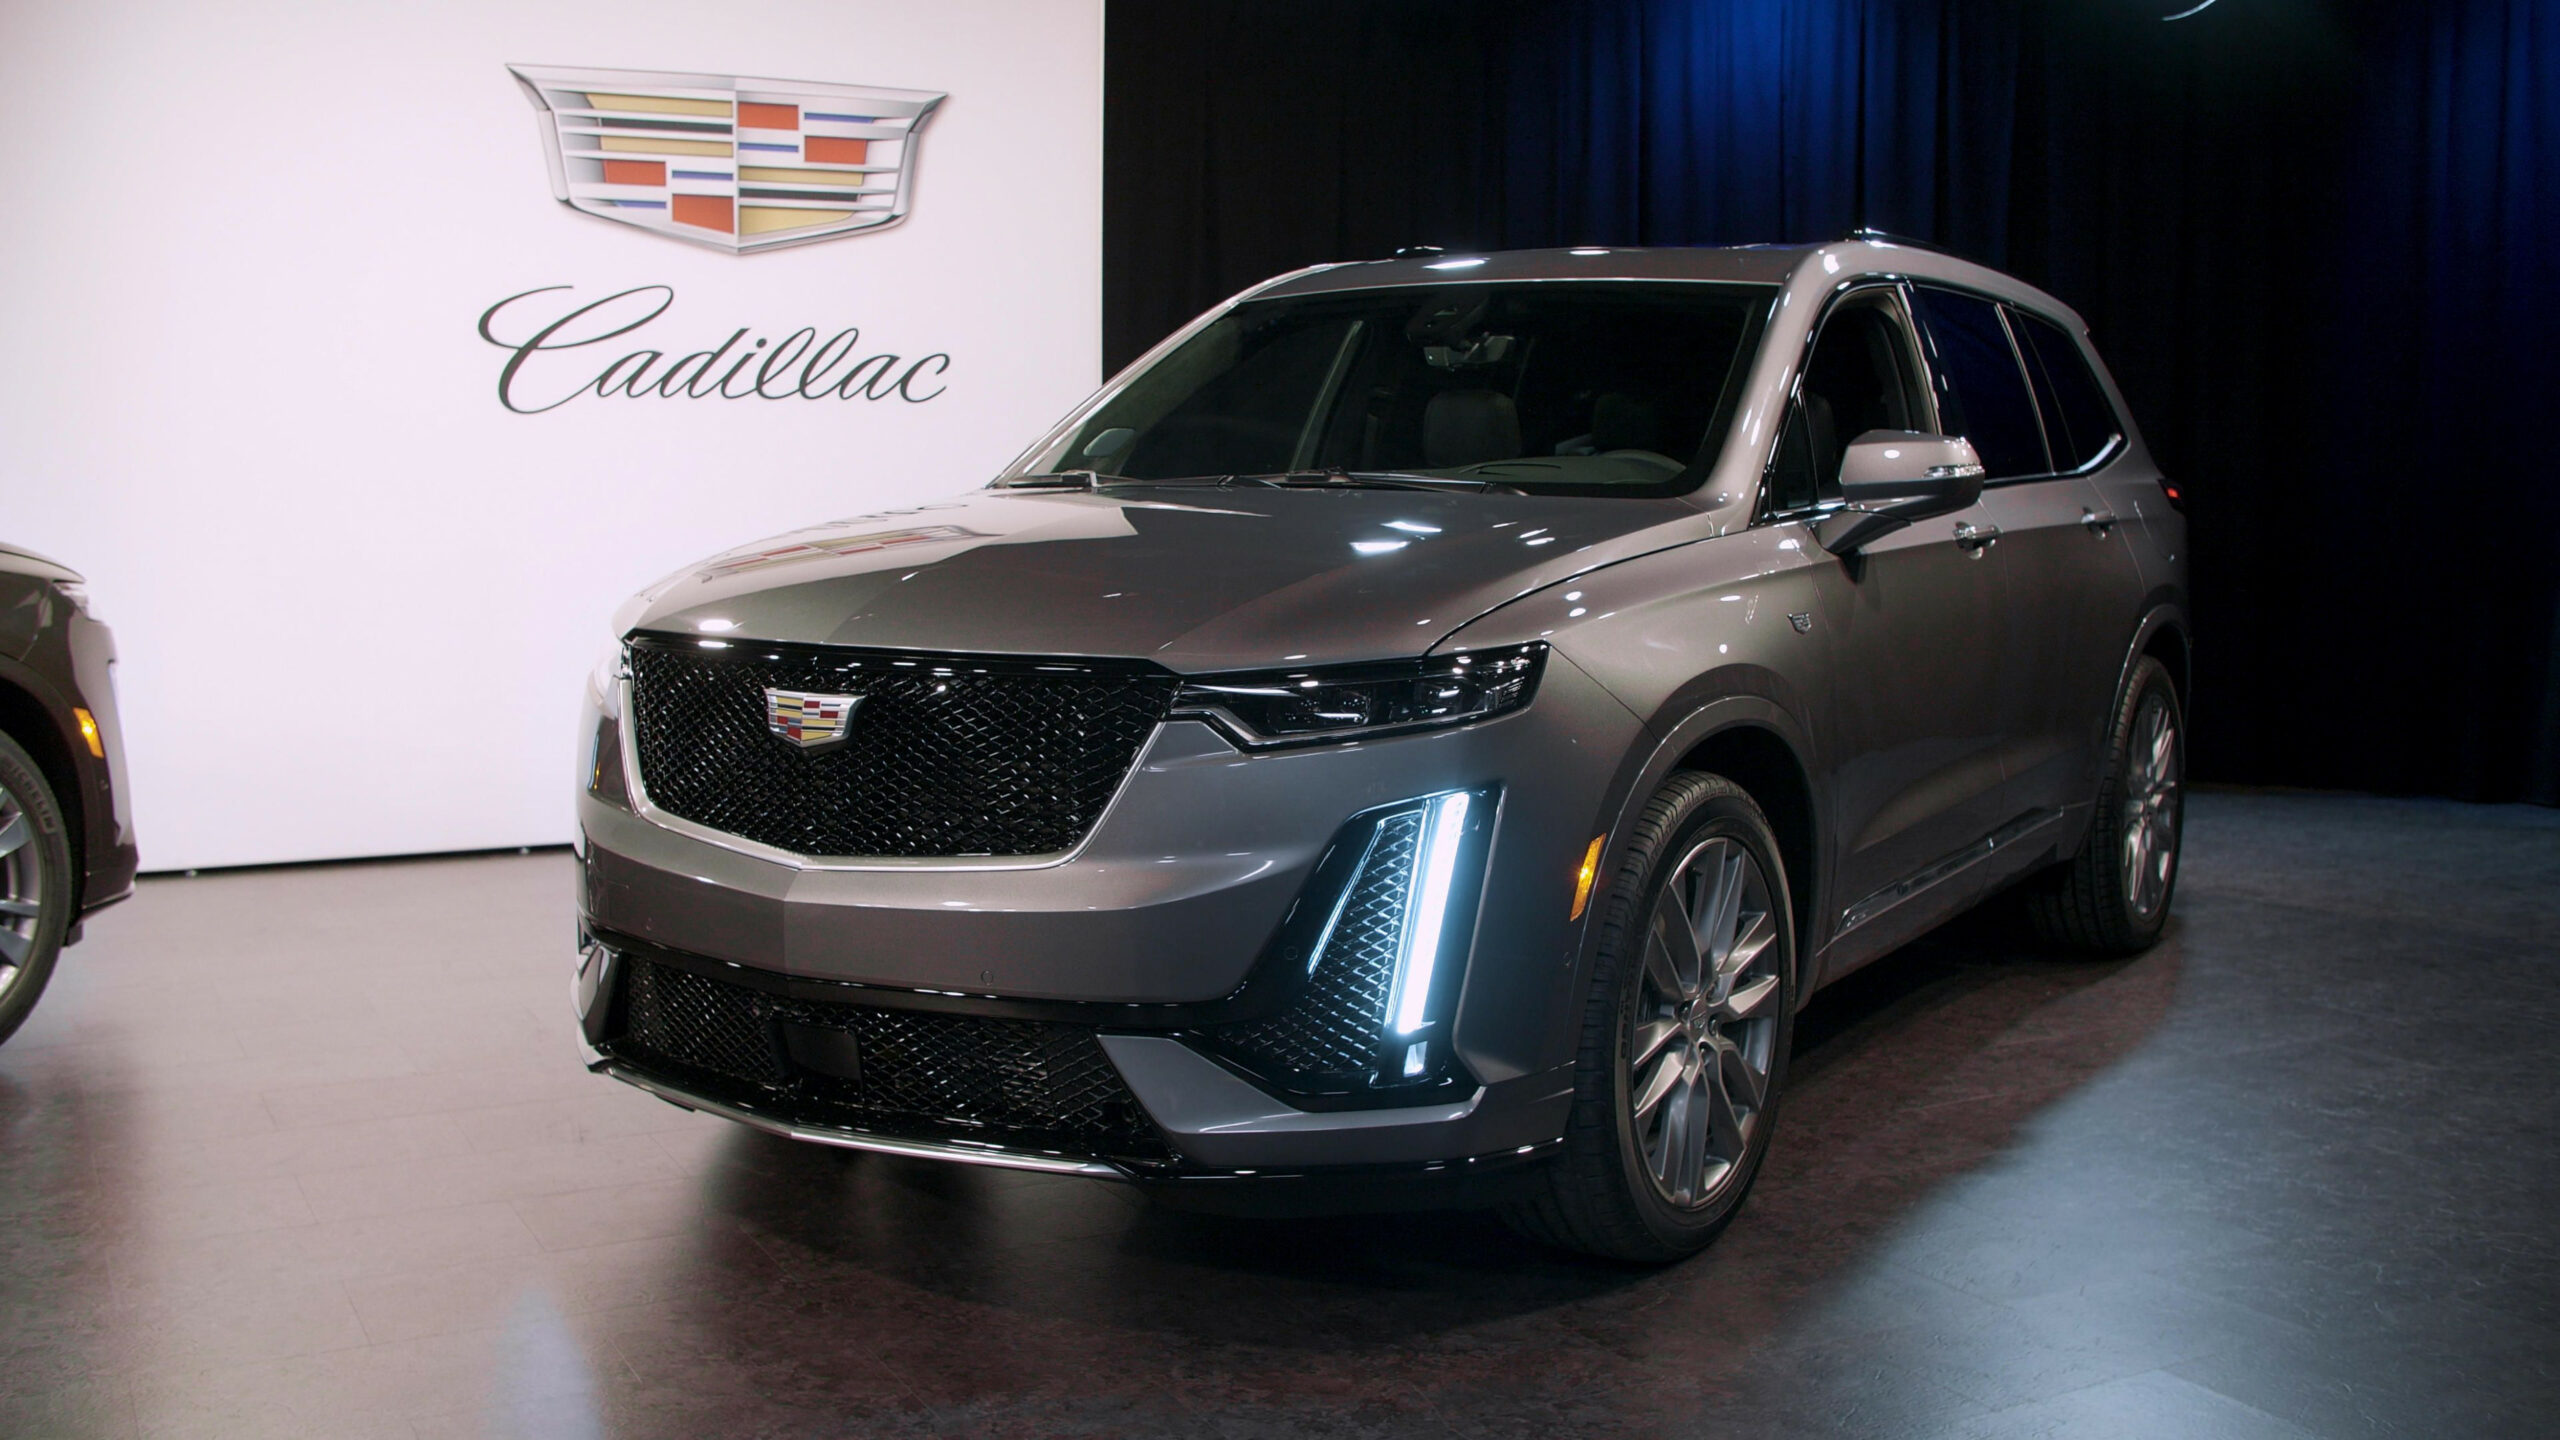 8 Cadillac XT8 gets unwrapped before the Detroit Auto Show - cadillac rv show 2020